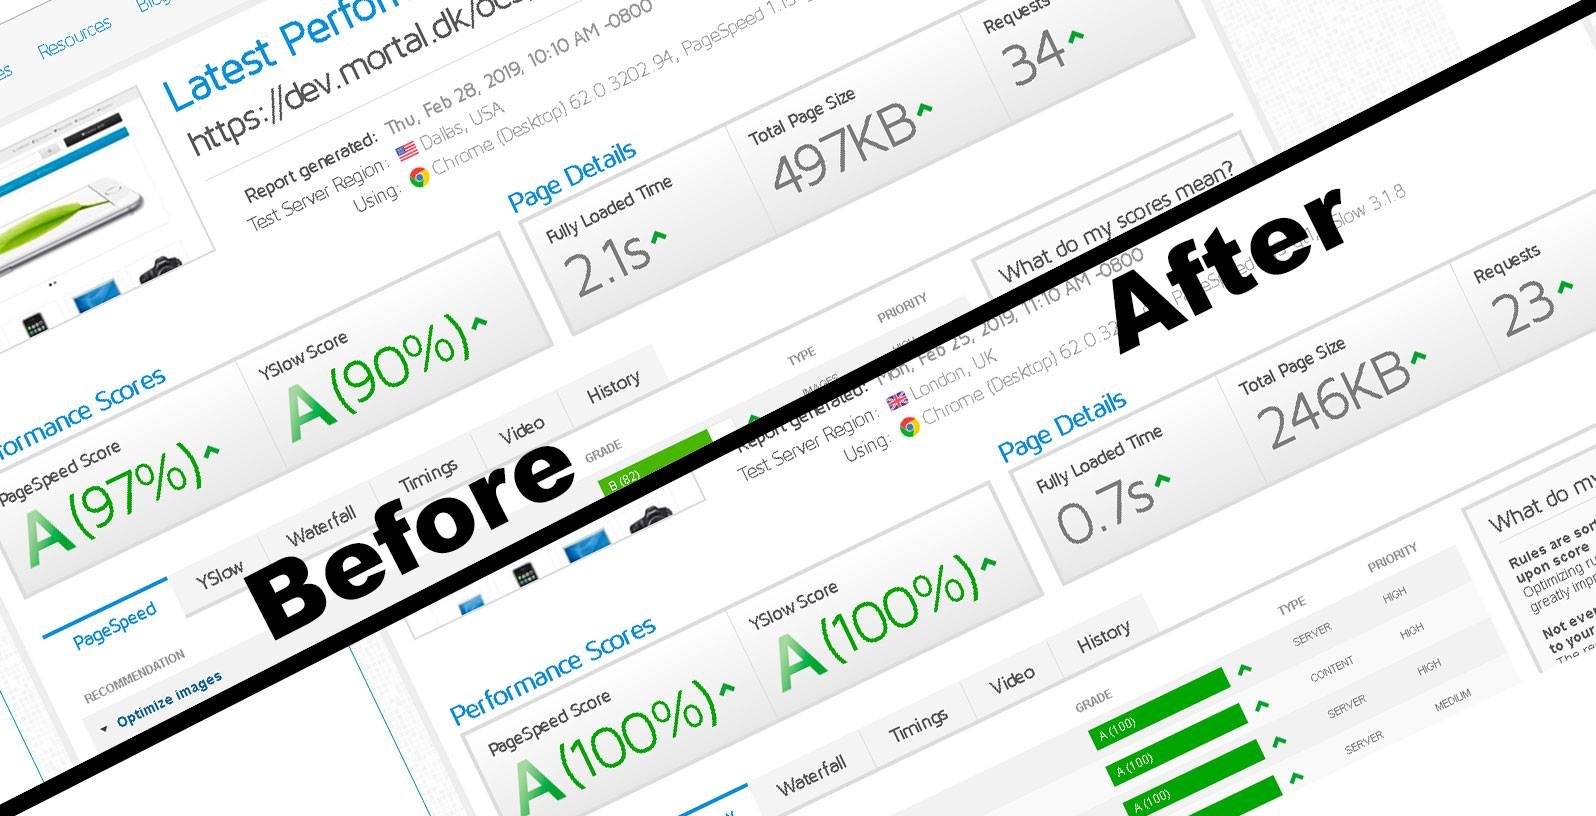 How to get perfect performance score for opencart webshop